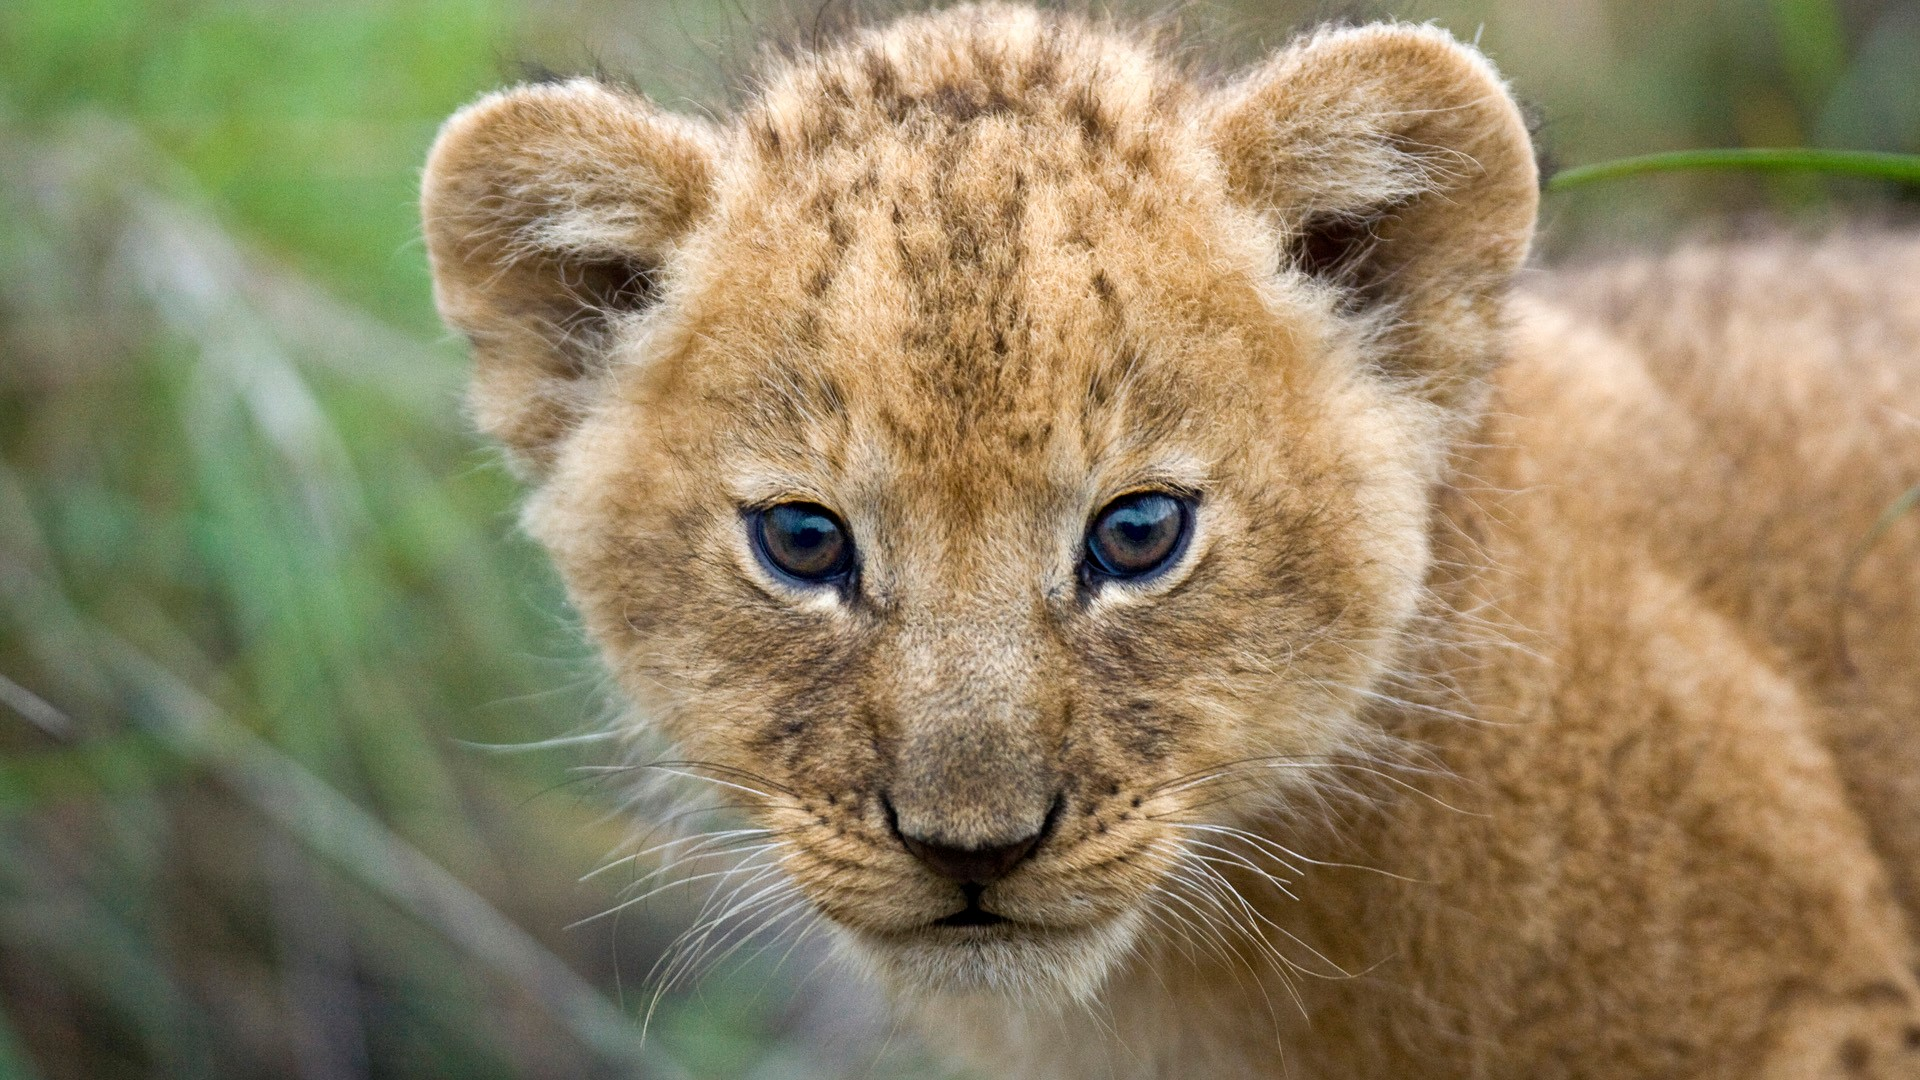 Free Download Beautiful Cute Lion Cub Closeup Face Hd Wallpapers Hd Wallpapers 1920x1080 For Your Desktop Mobile Tablet Explore 66 Lion Cub Wallpaper Lion Wallpaper Hd Cute Lion Cubs